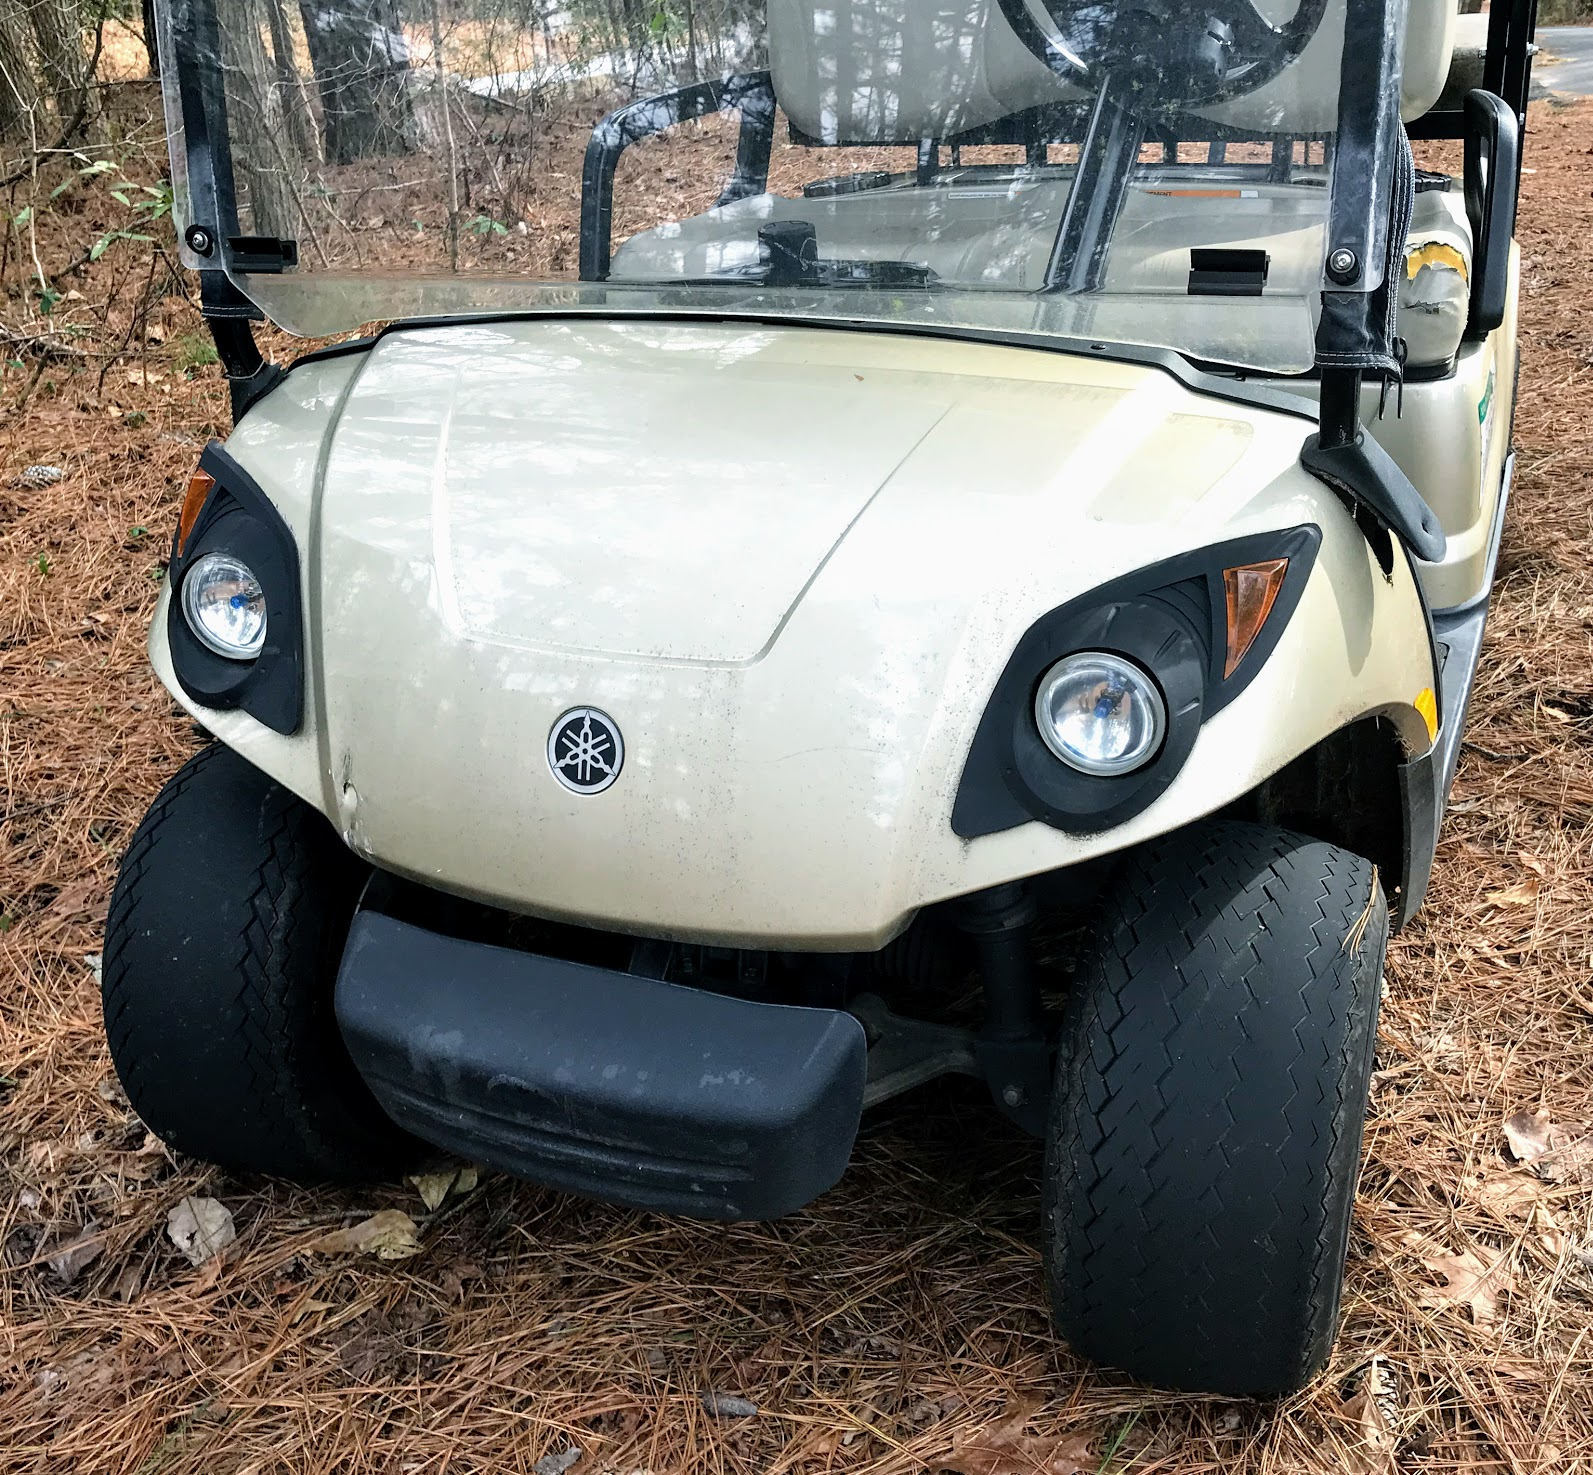 Yamaha Golf Cart - One Of The Most Trusted Makes for Golf Carts